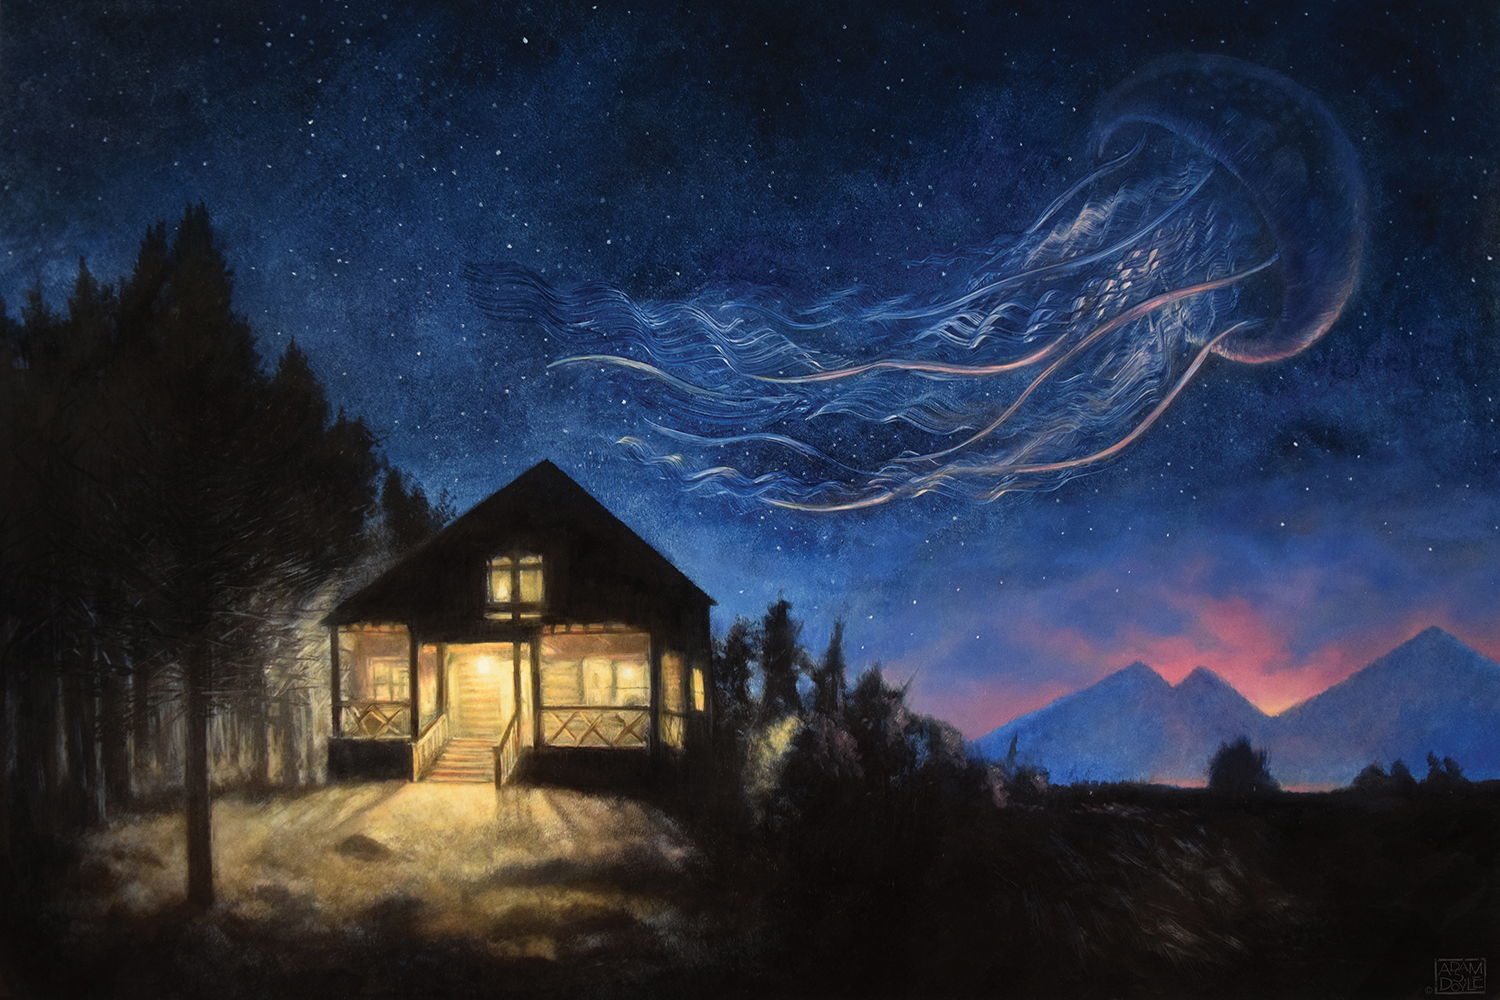 a cabin in the woods at night with a large jellyfish in the sky